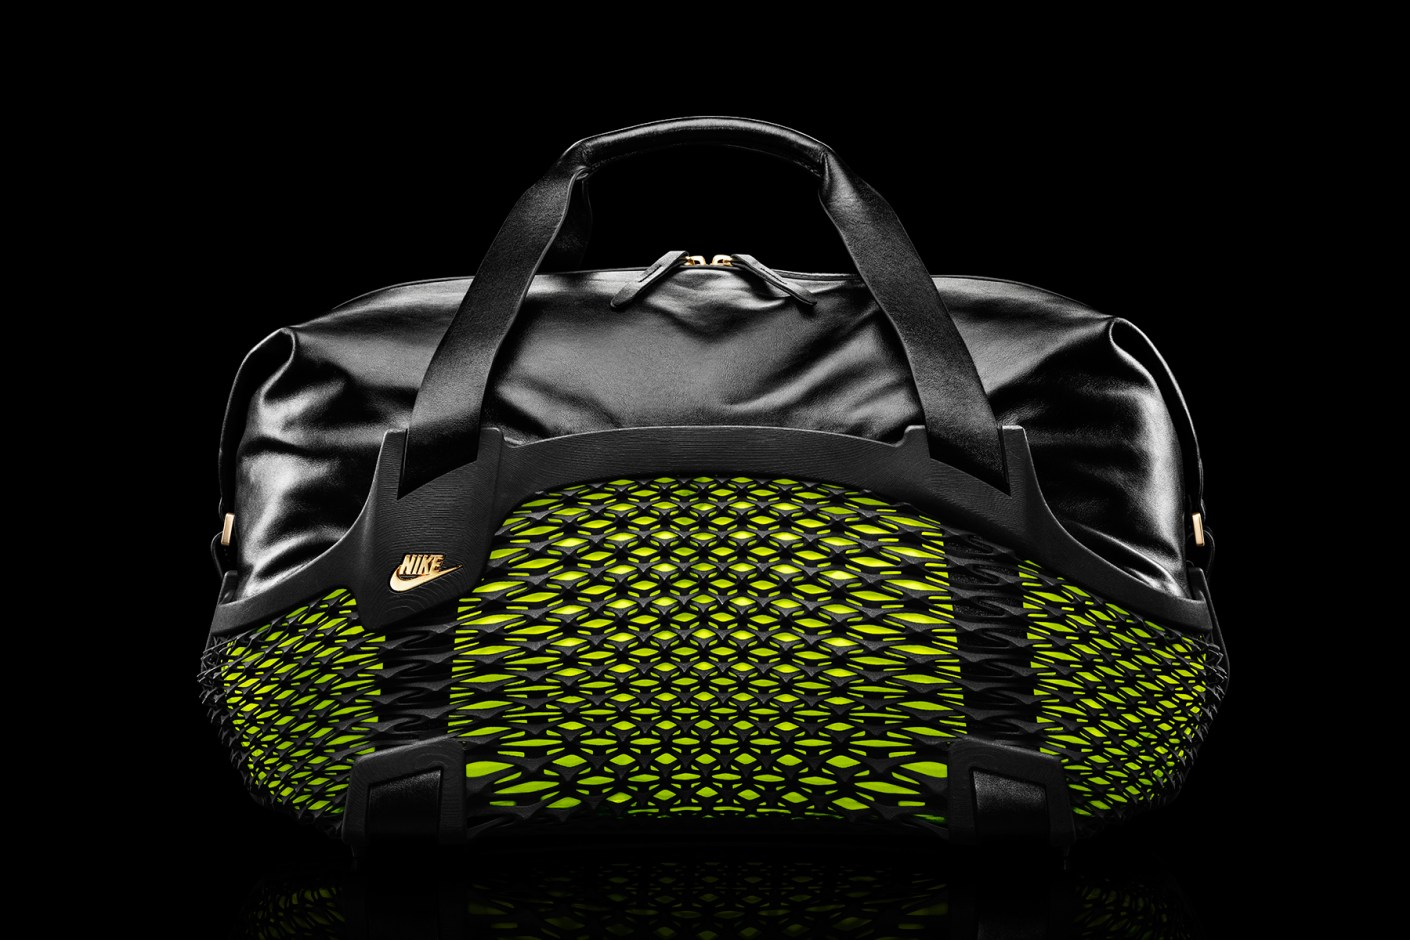 Image of Nike Uses 3D Printing in its 2014 Summer Football Equipment Collection